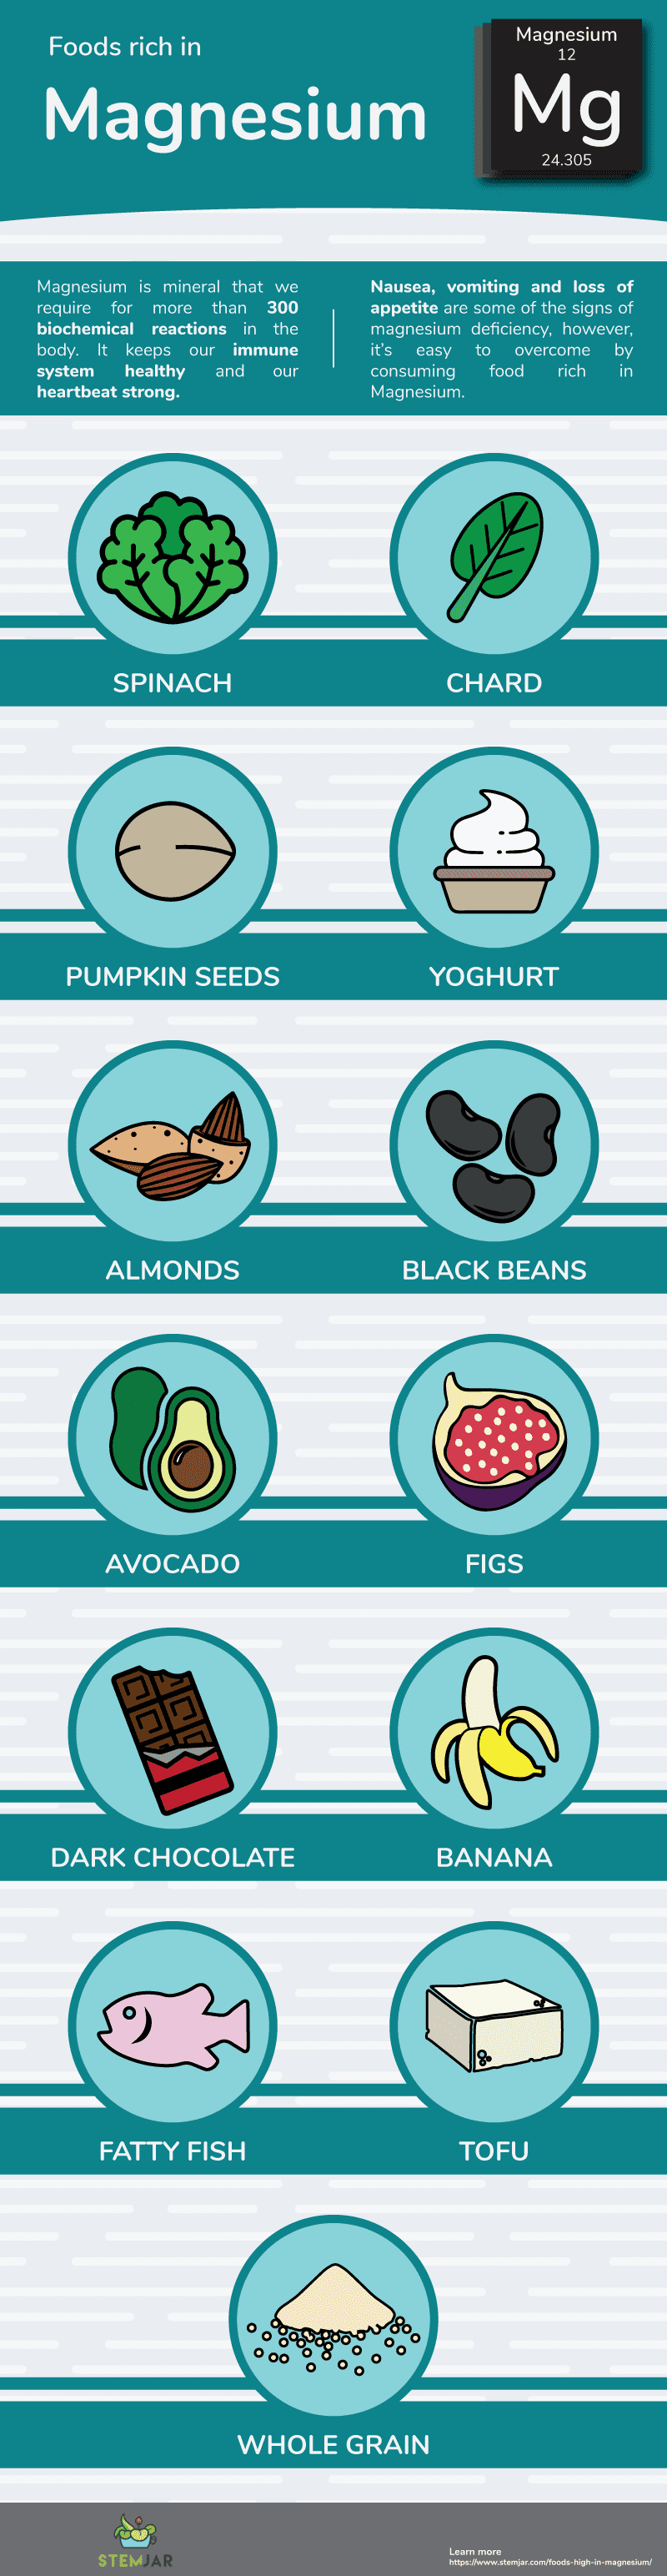 foods high in magnesium info graphic